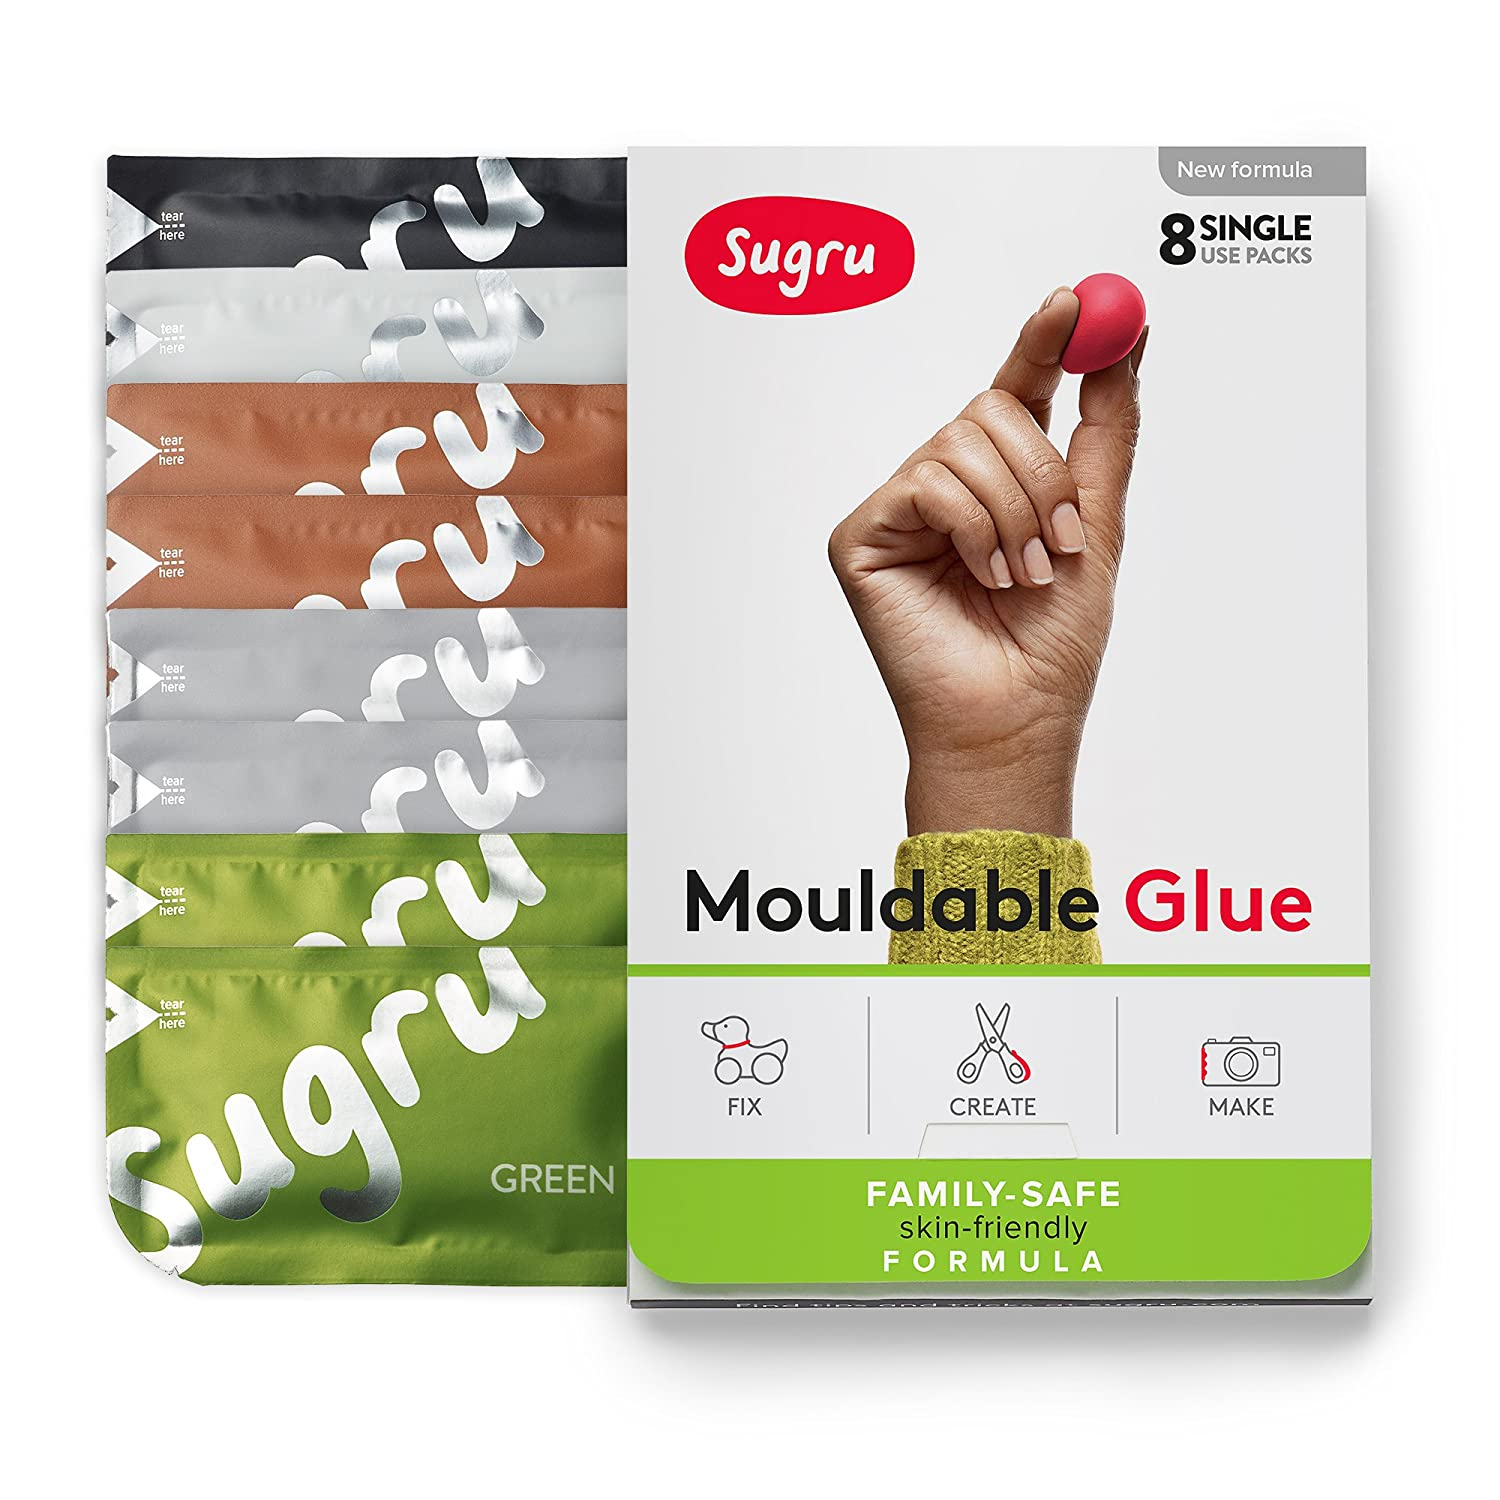 Sugru modellabile colla  –   family-safe | formula ipoallergenico  –   colori naturali 8-pack FormFormForm Ltd I000743